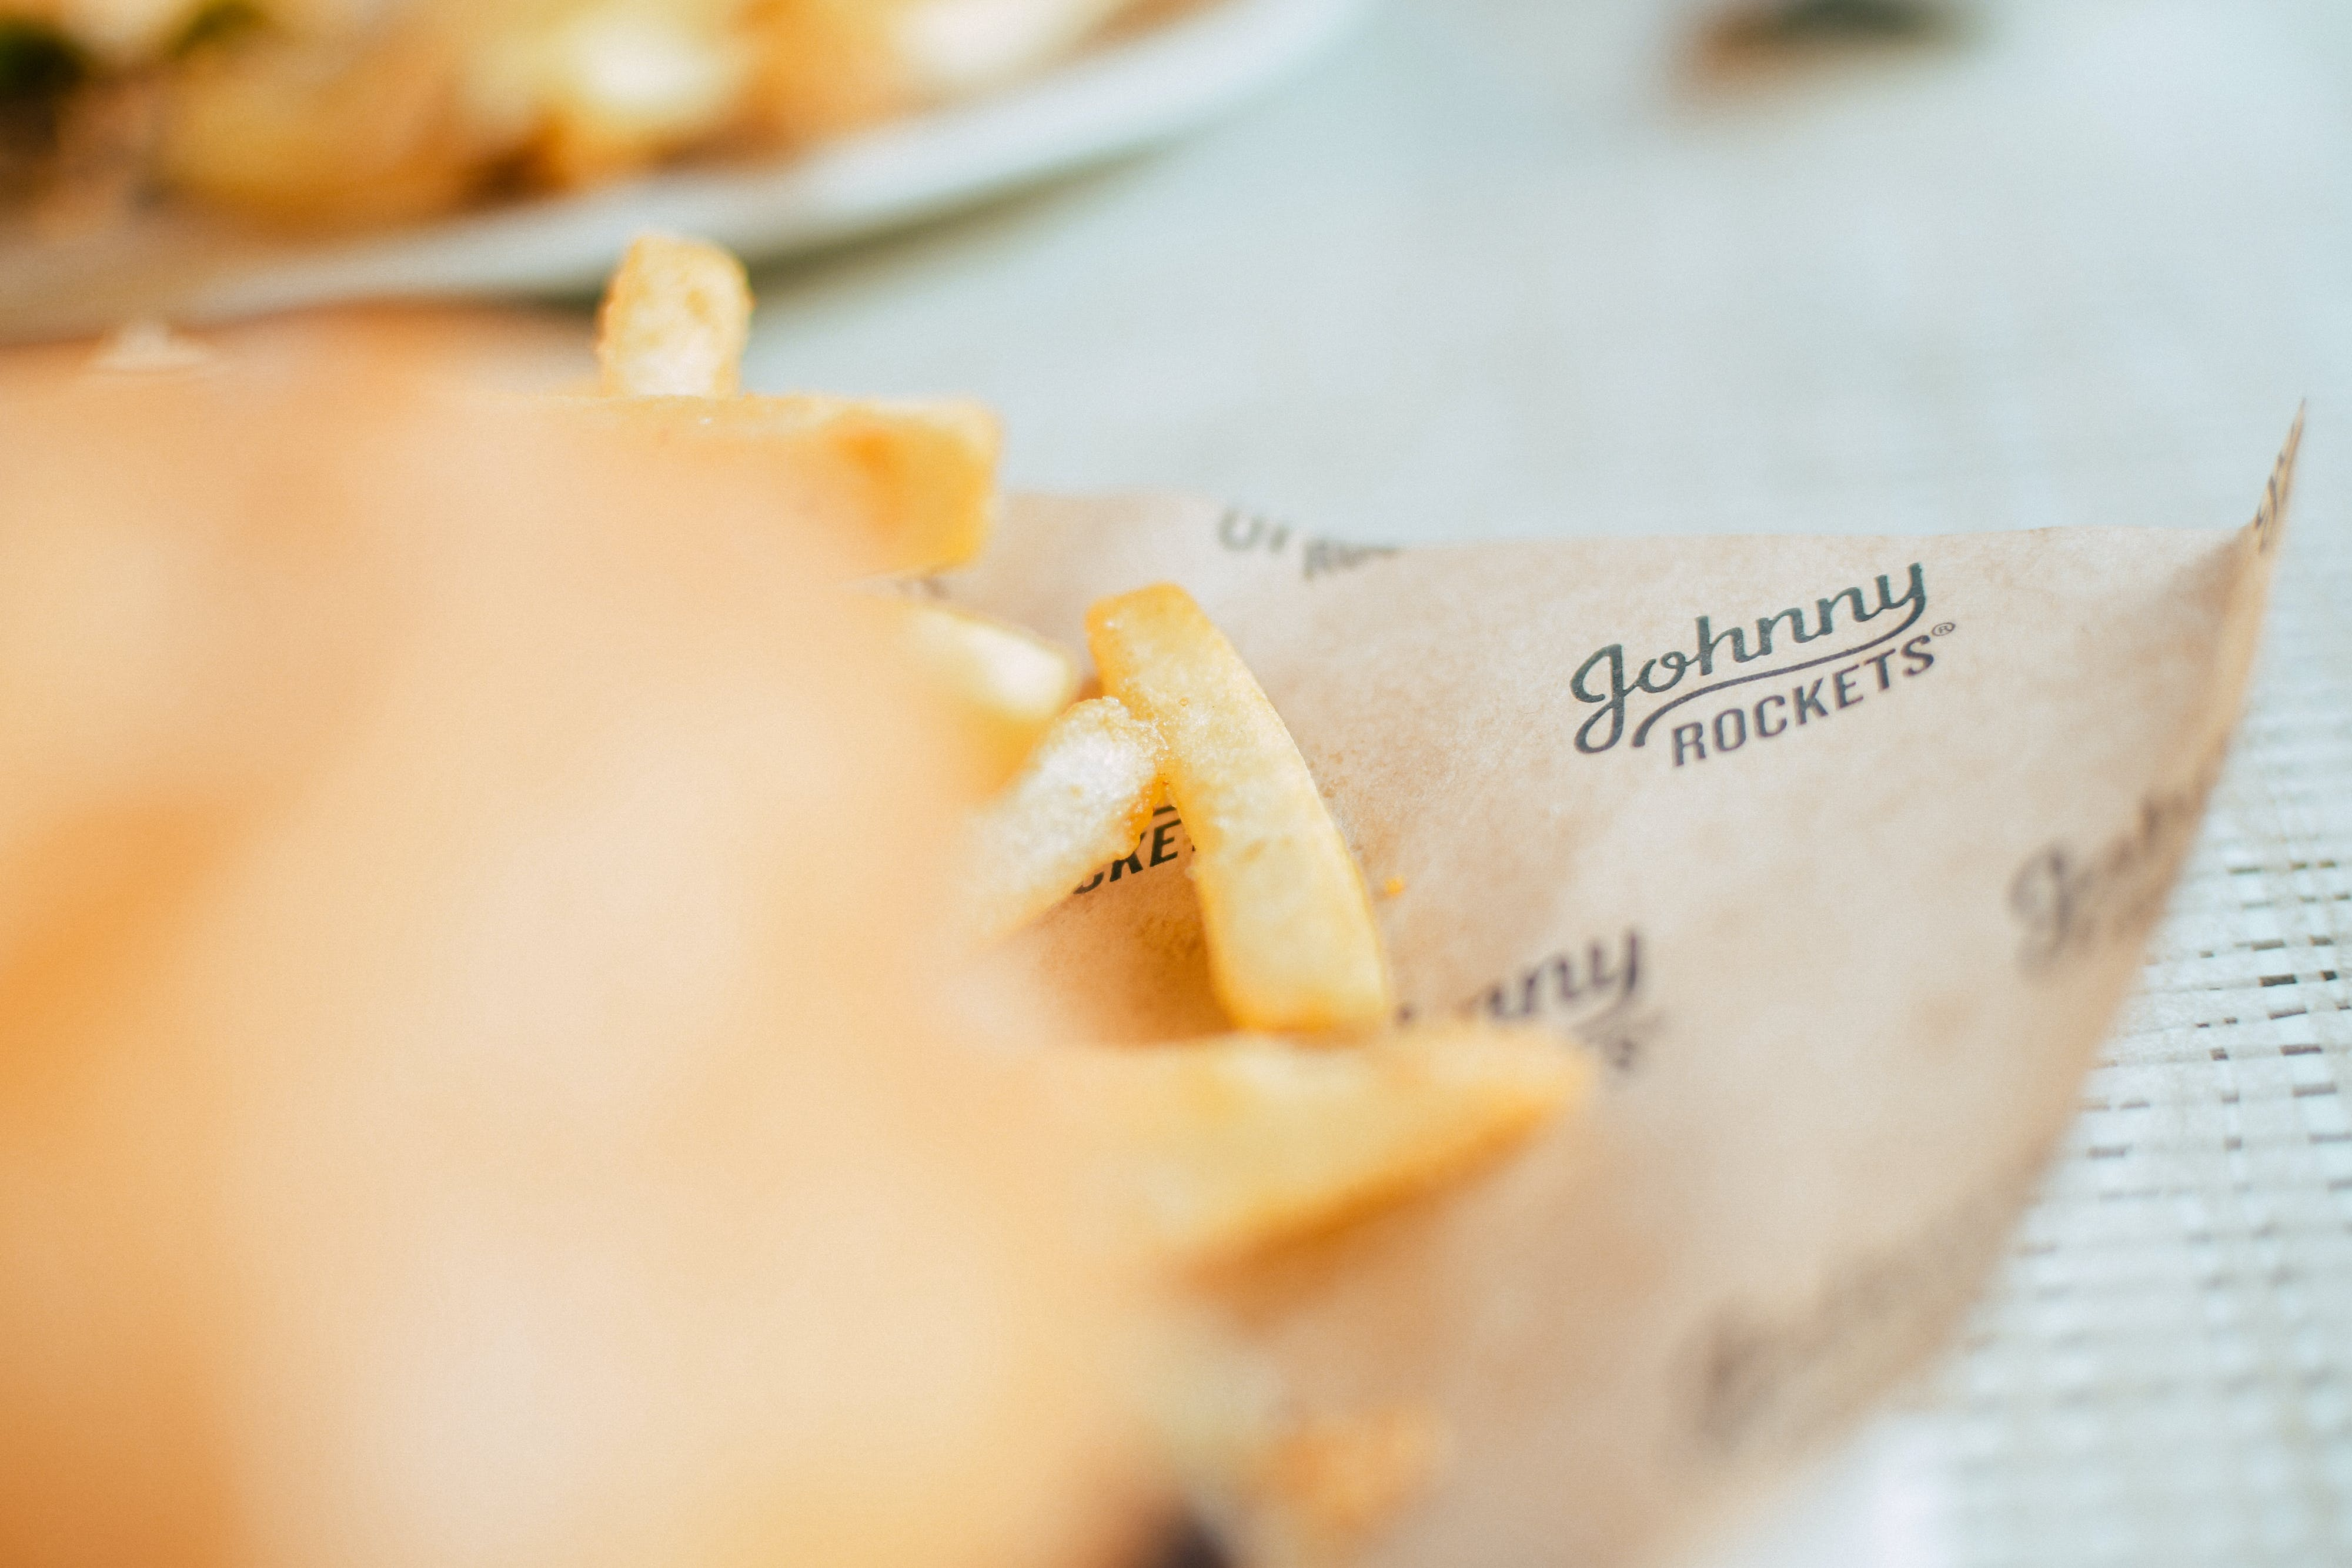 Free stock photo of delicious, french fries, fries, Johnny rockets